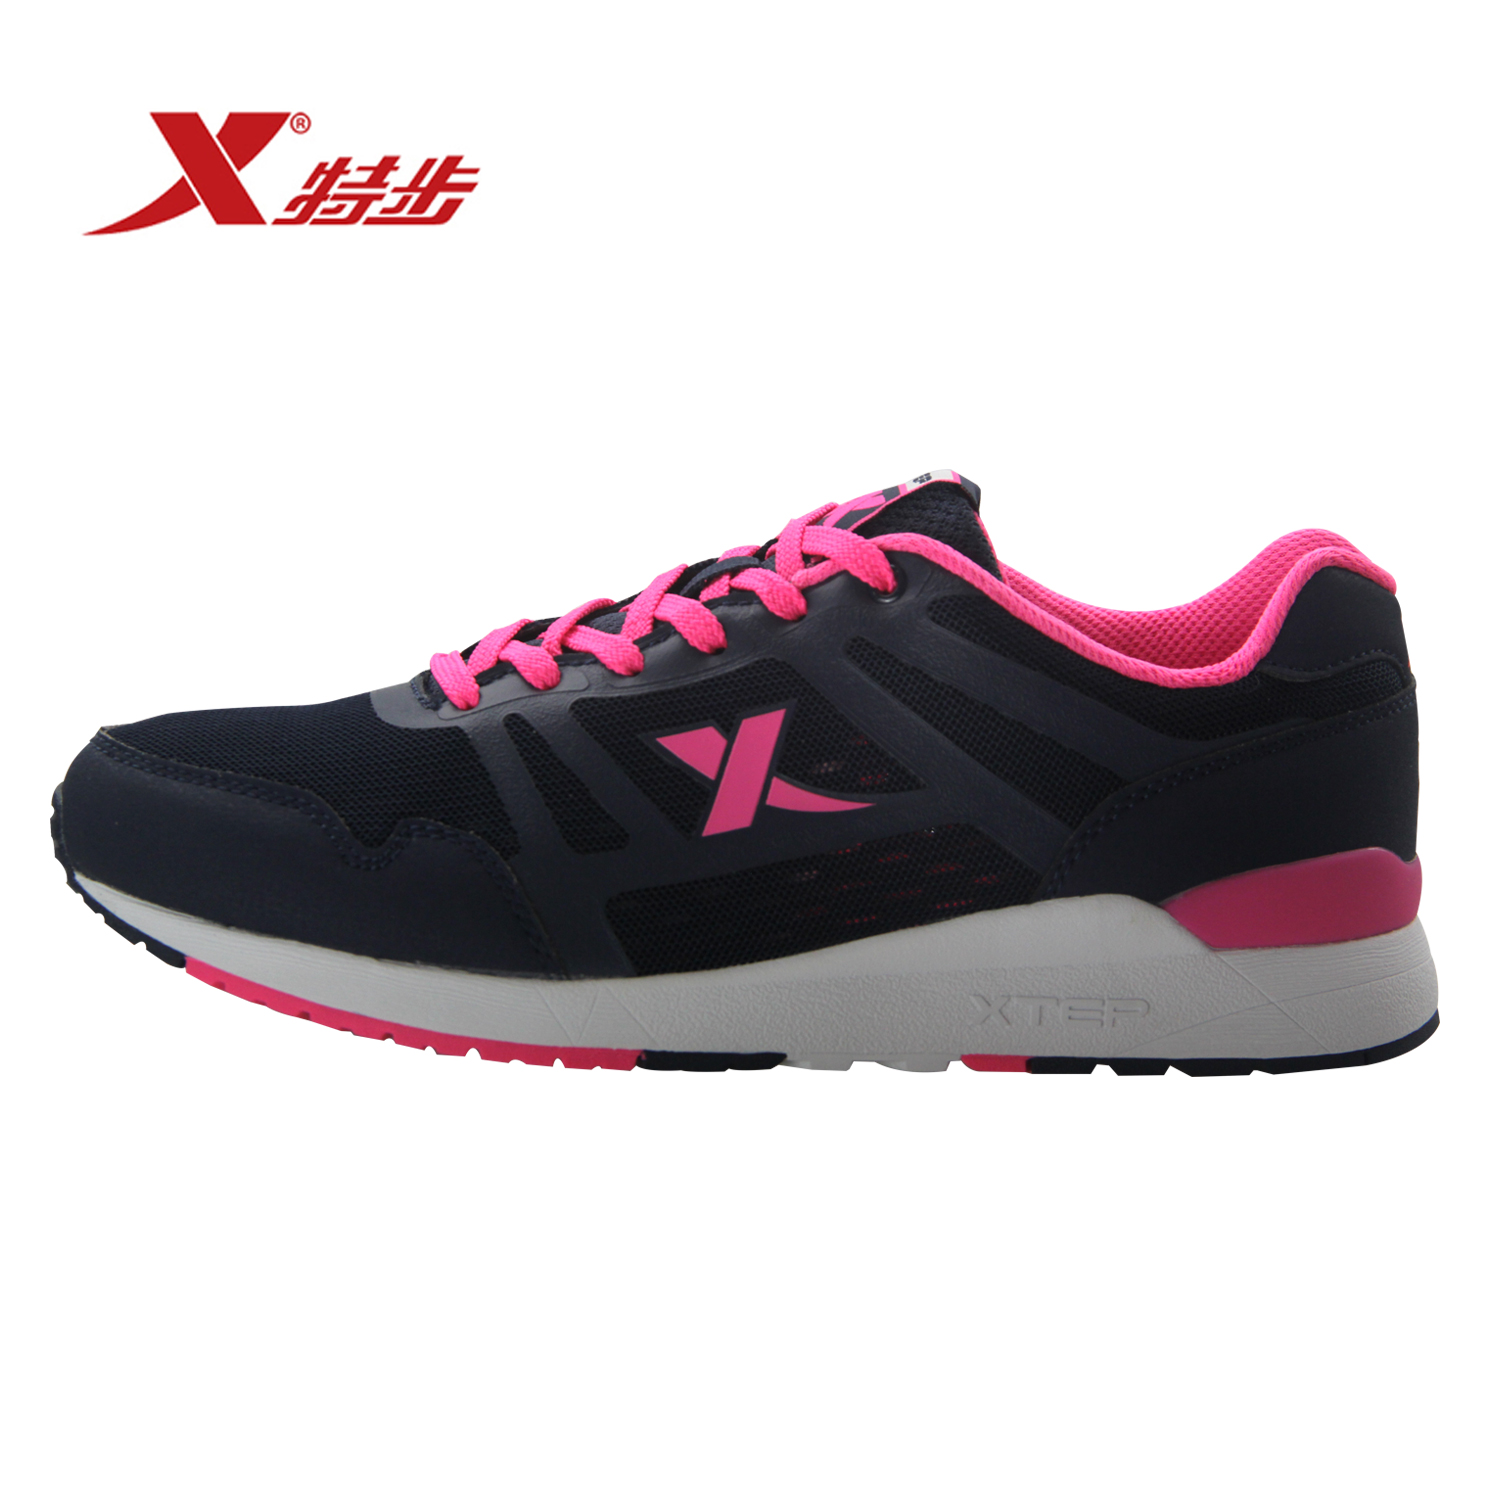 Xtep/xtep female 2016 summer new women's casual shoes increased breathable shoes sports shoes slip resistant grinding